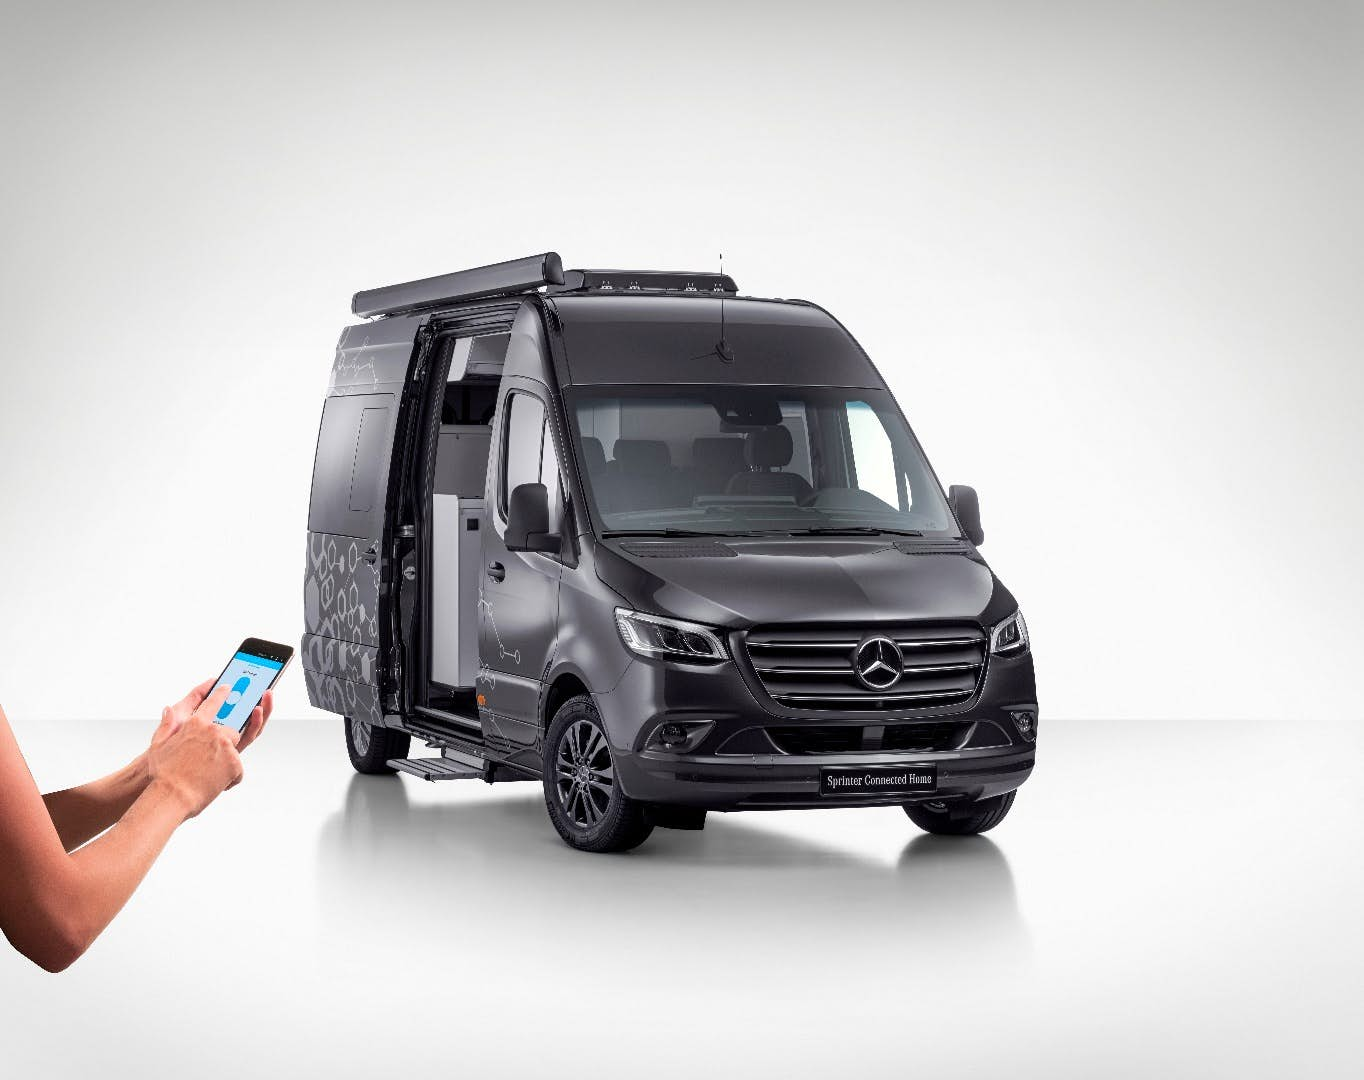 mercedes unveils 3 new innovative smart camper vans. Black Bedroom Furniture Sets. Home Design Ideas